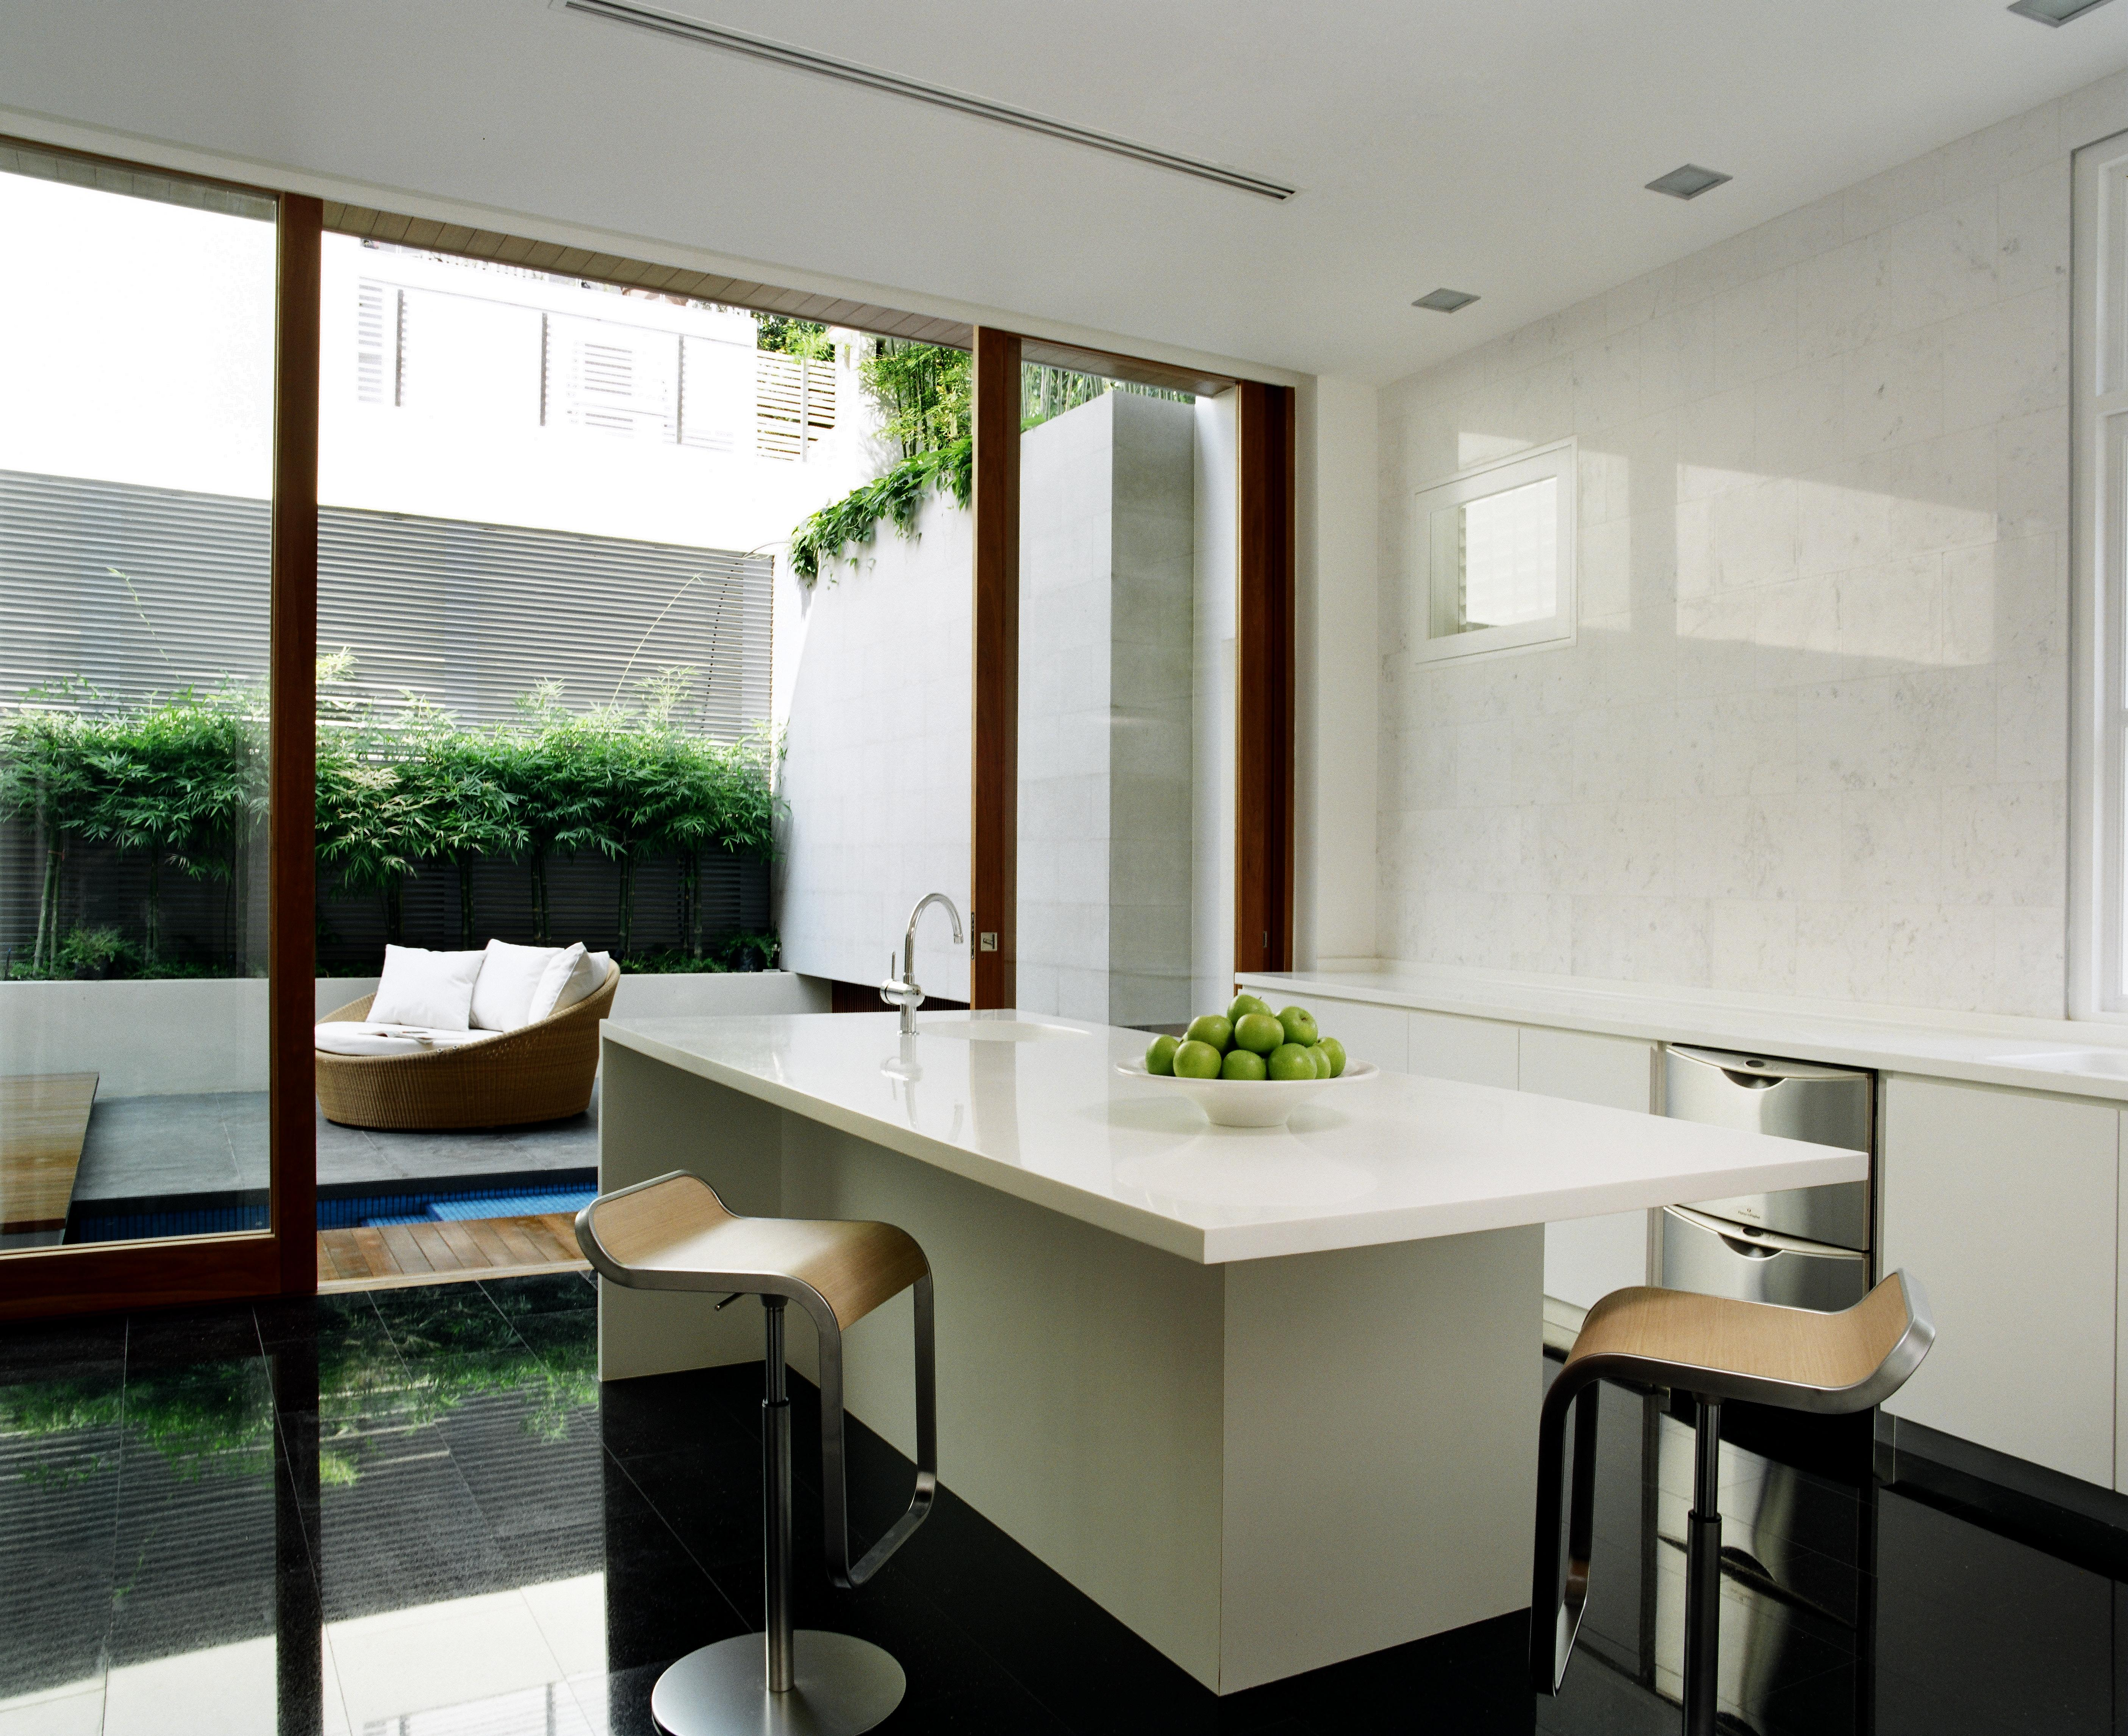 The cozy, minimalist kitchen space is defined by the contrast between black tile flooring and white countertops. Island features dining space over a pair of metal and good stools, while the patio with circular wicker seating is seen through sliding glass panel.